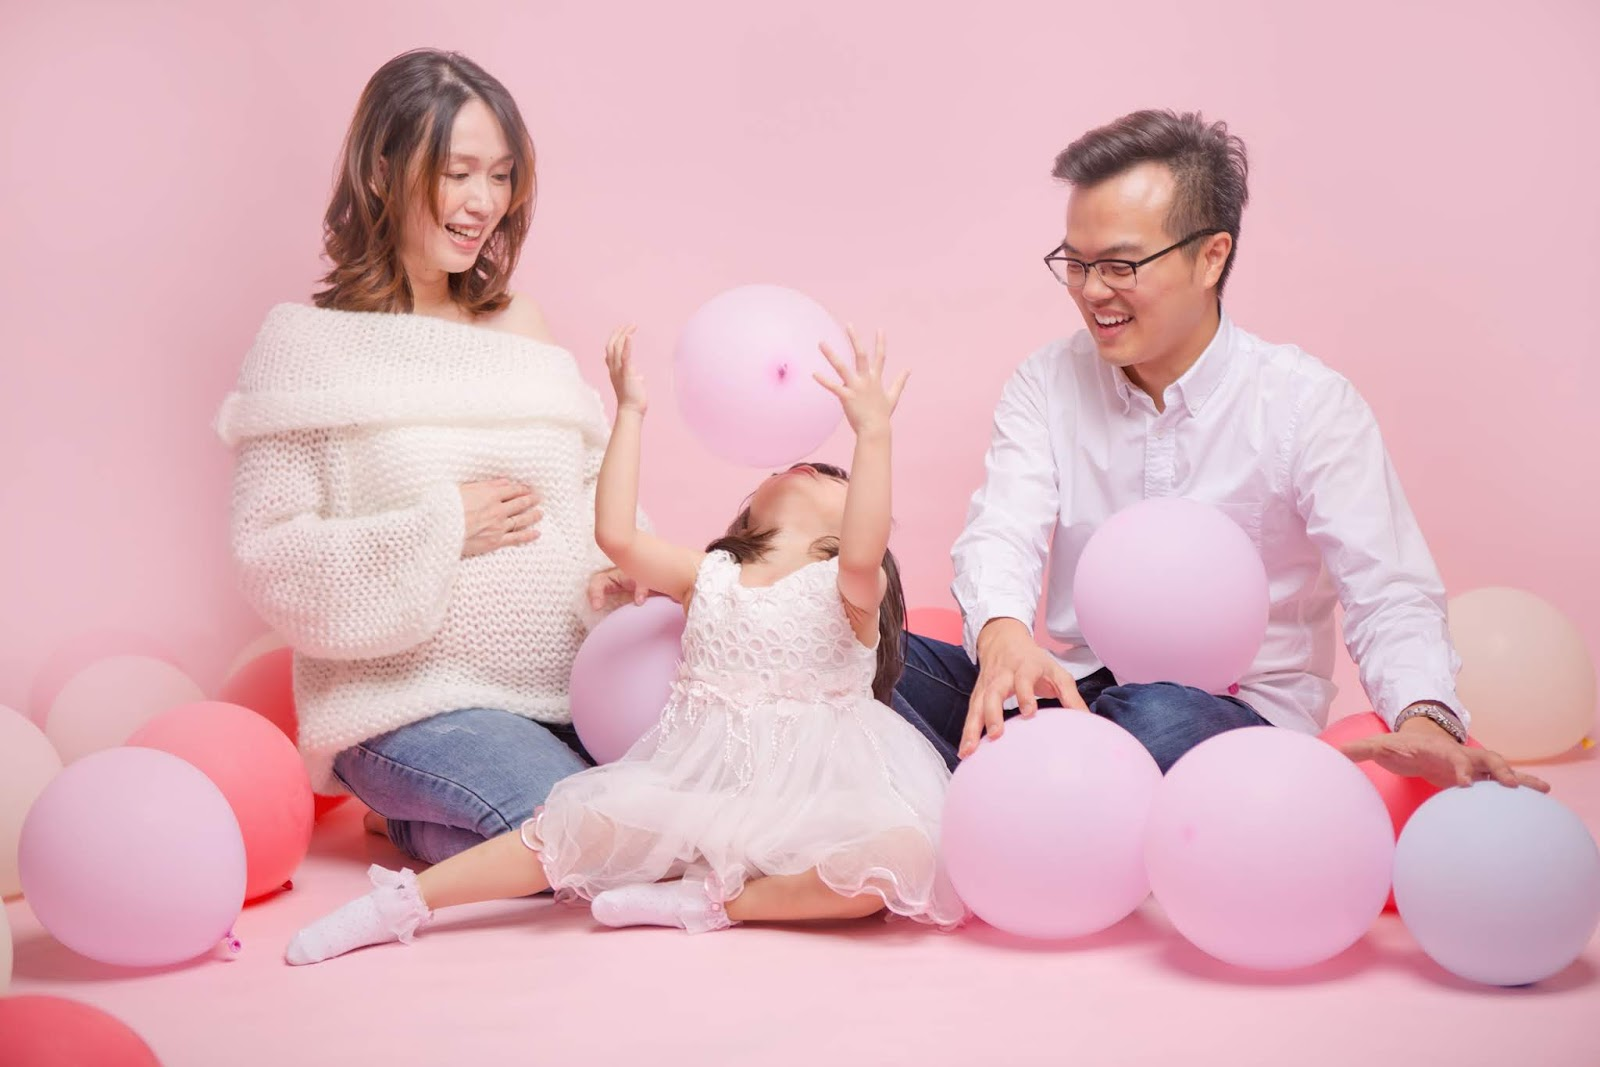 Maternity photography | Maternity photographer Penang | Maternity photograph | Photo Studio Butterworth, Penang | Best recommended Photographer | Friendly & Happy family portraits | Family portraits | Newborn & baby photographer Penang & Butterworth